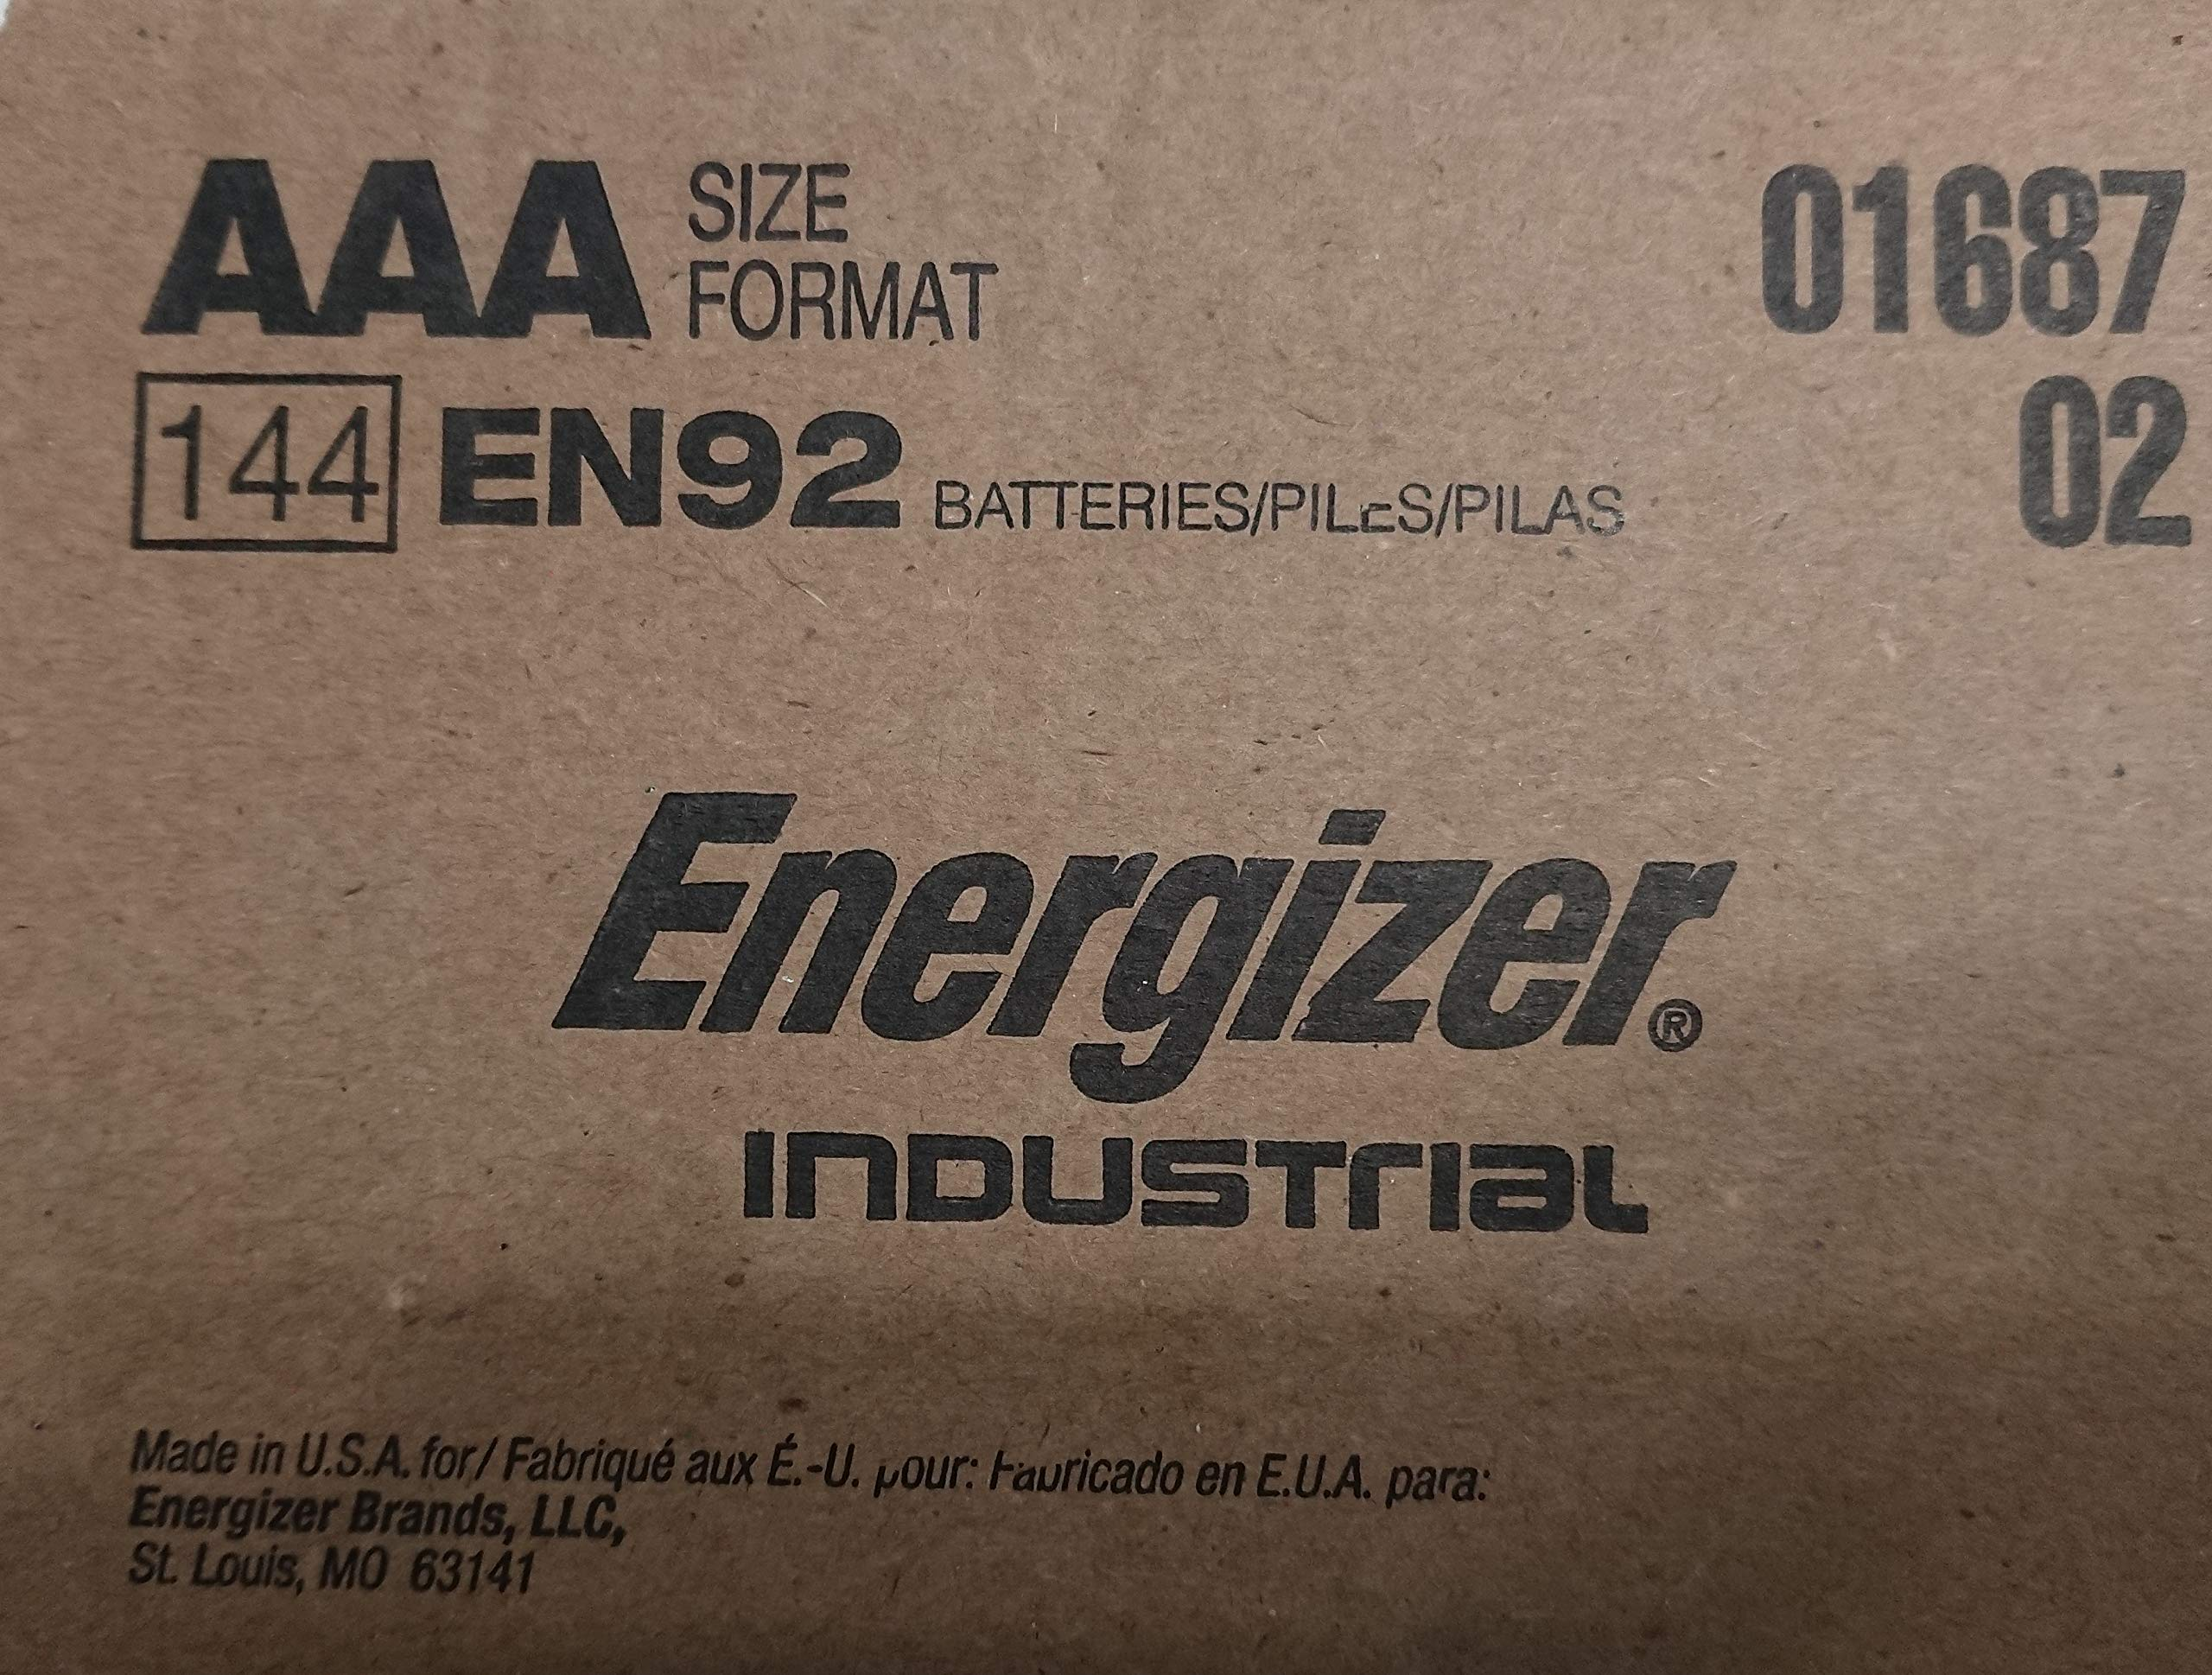 Energizer Industrial EN92 AAA 144 Counts Batteries - Made in The USA by Energizer